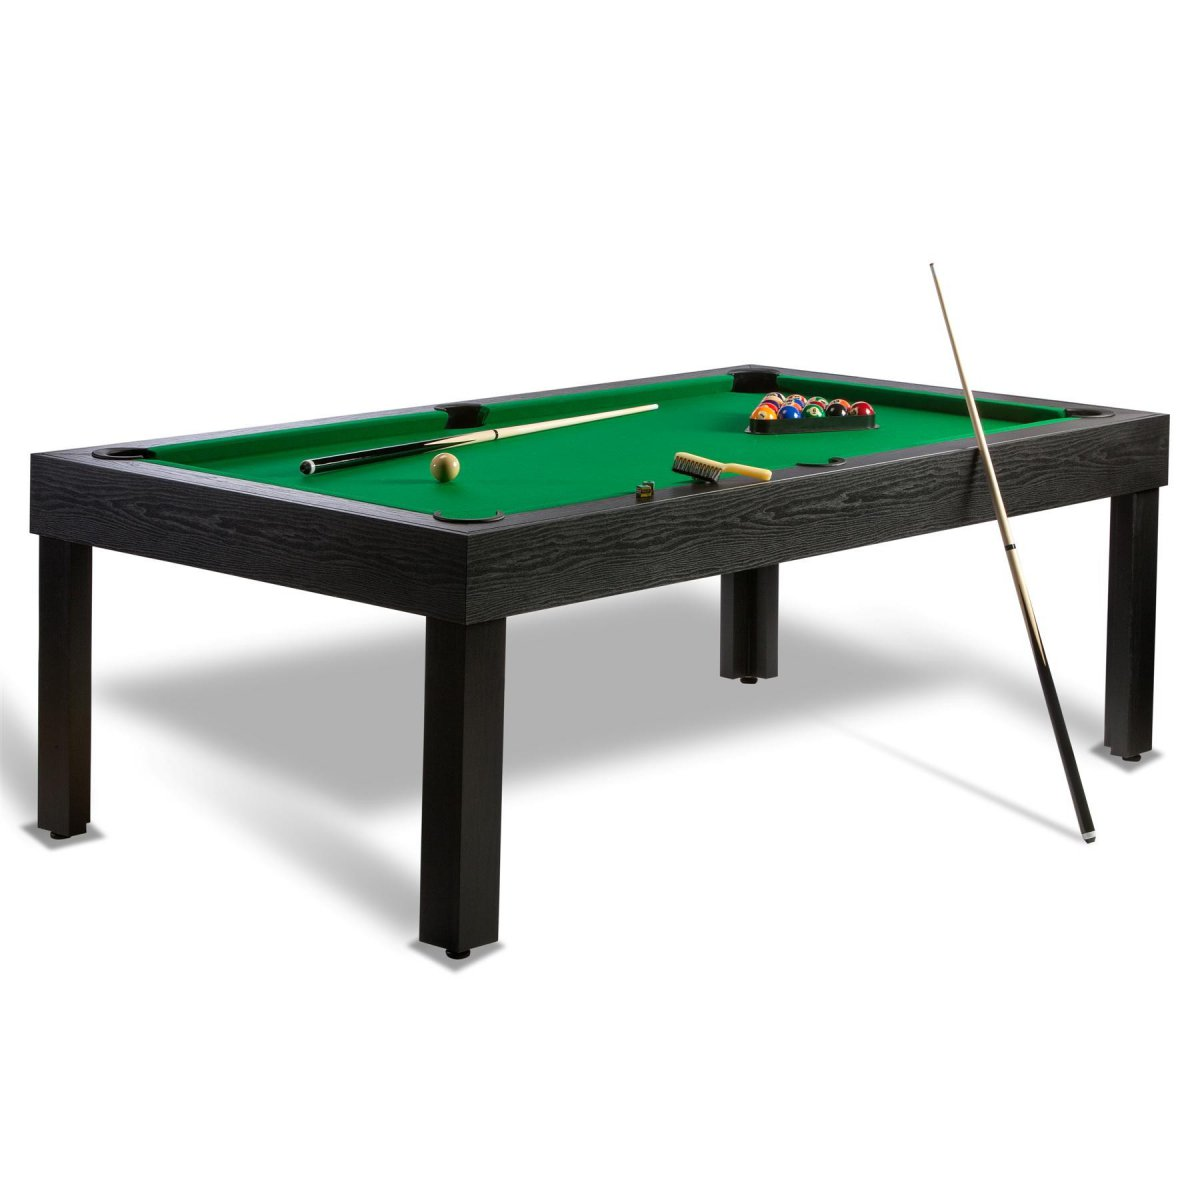 Emejing table ardoise billard photos for Table transformable